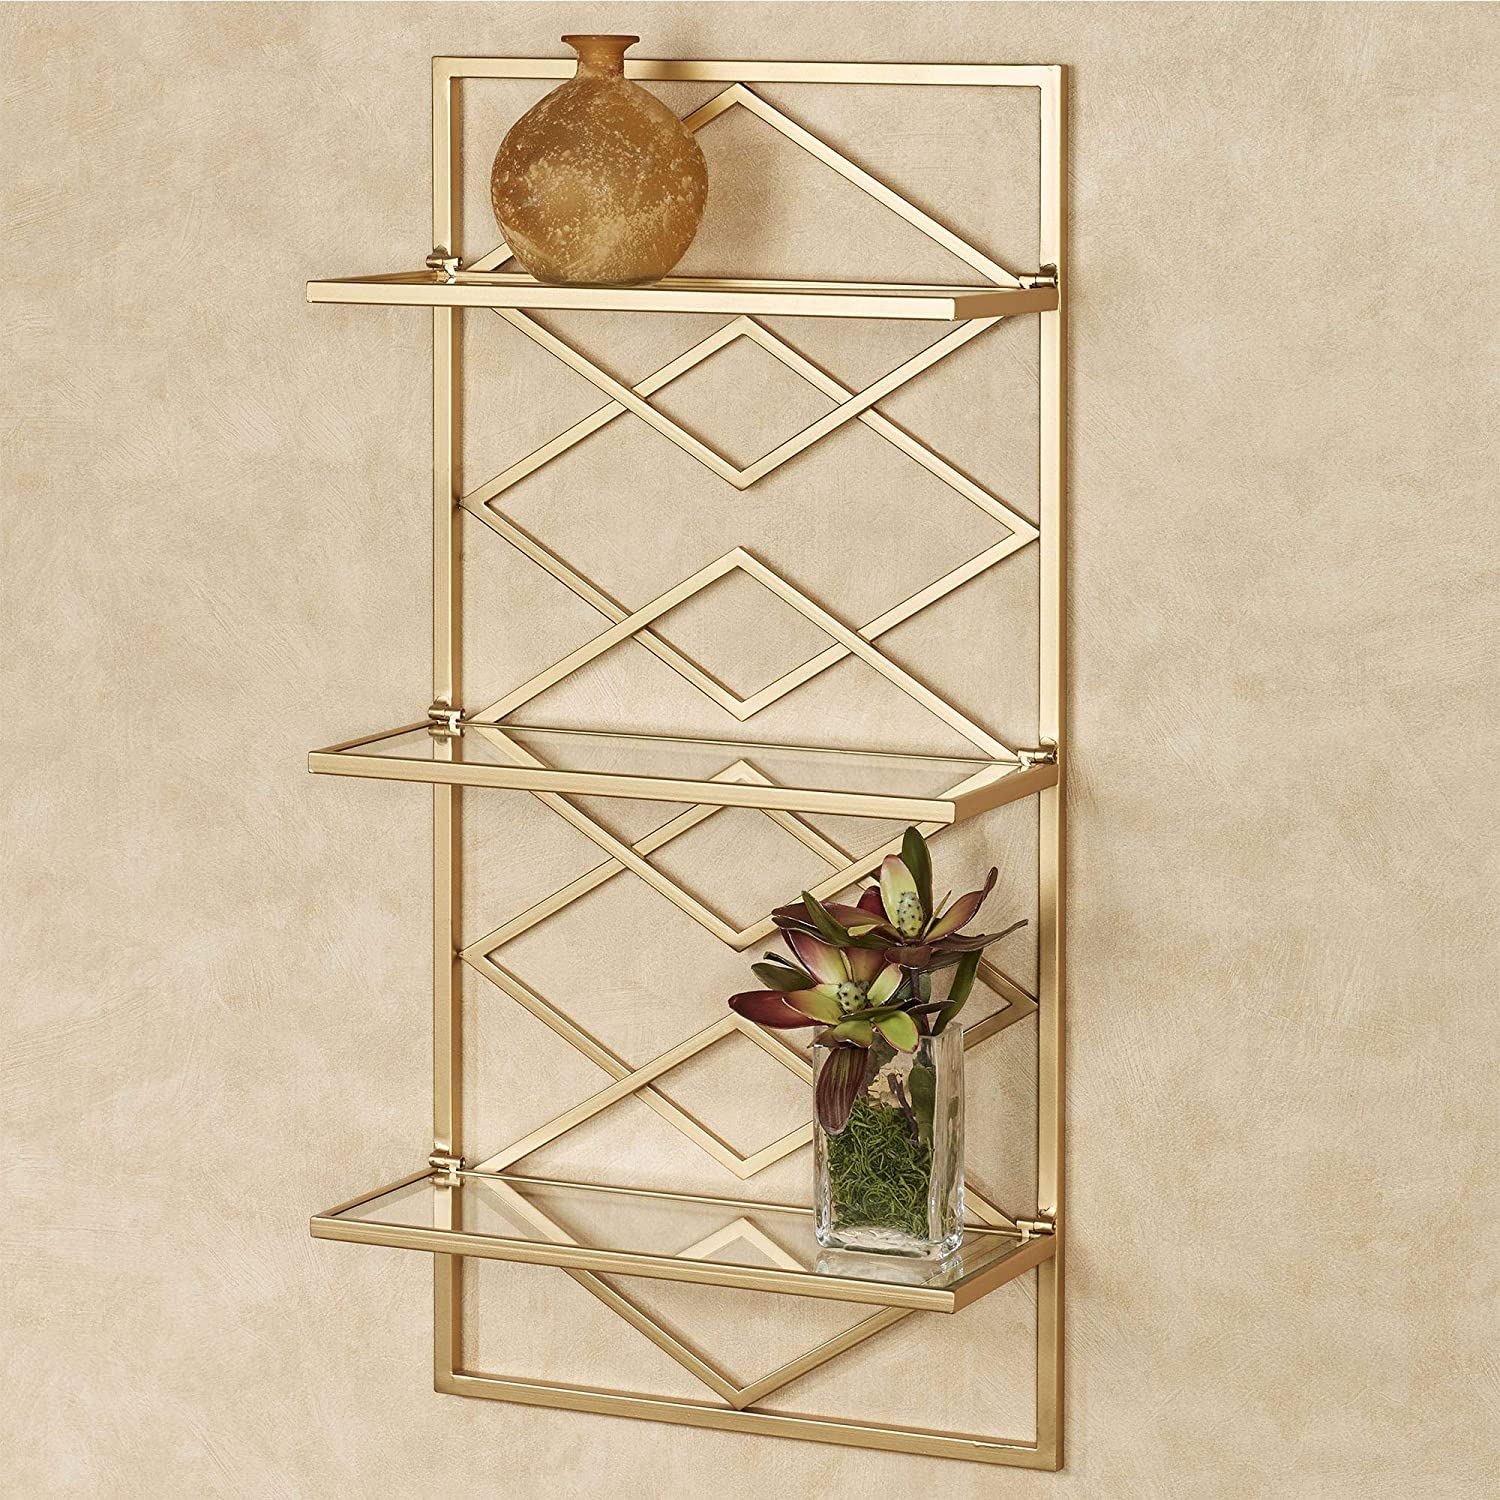 Touch of Class Diamond Challenge the lowest price of Japan Interlink Beveled Wall Metal Charlotte Mall Three Shelf